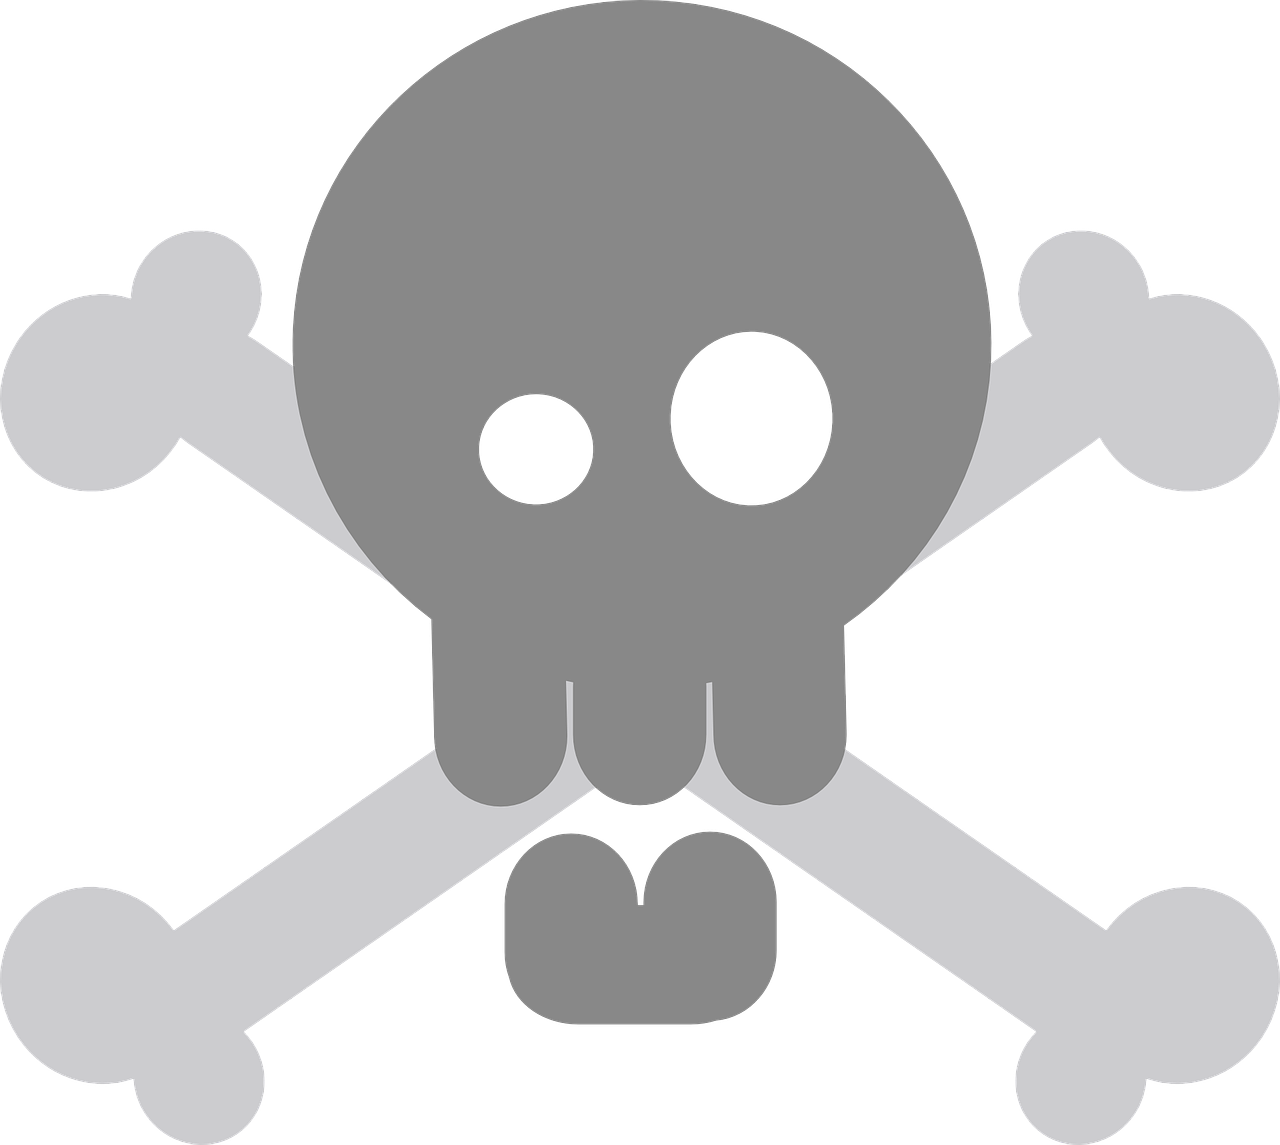 pirate,crossbones,skull,death's skull,fatal,deadly,skull and crossbones,death's head,bones,skeleton,crossed,remains,free vector graphics,free pictures, free photos, free images, royalty free, free illustrations, public domain